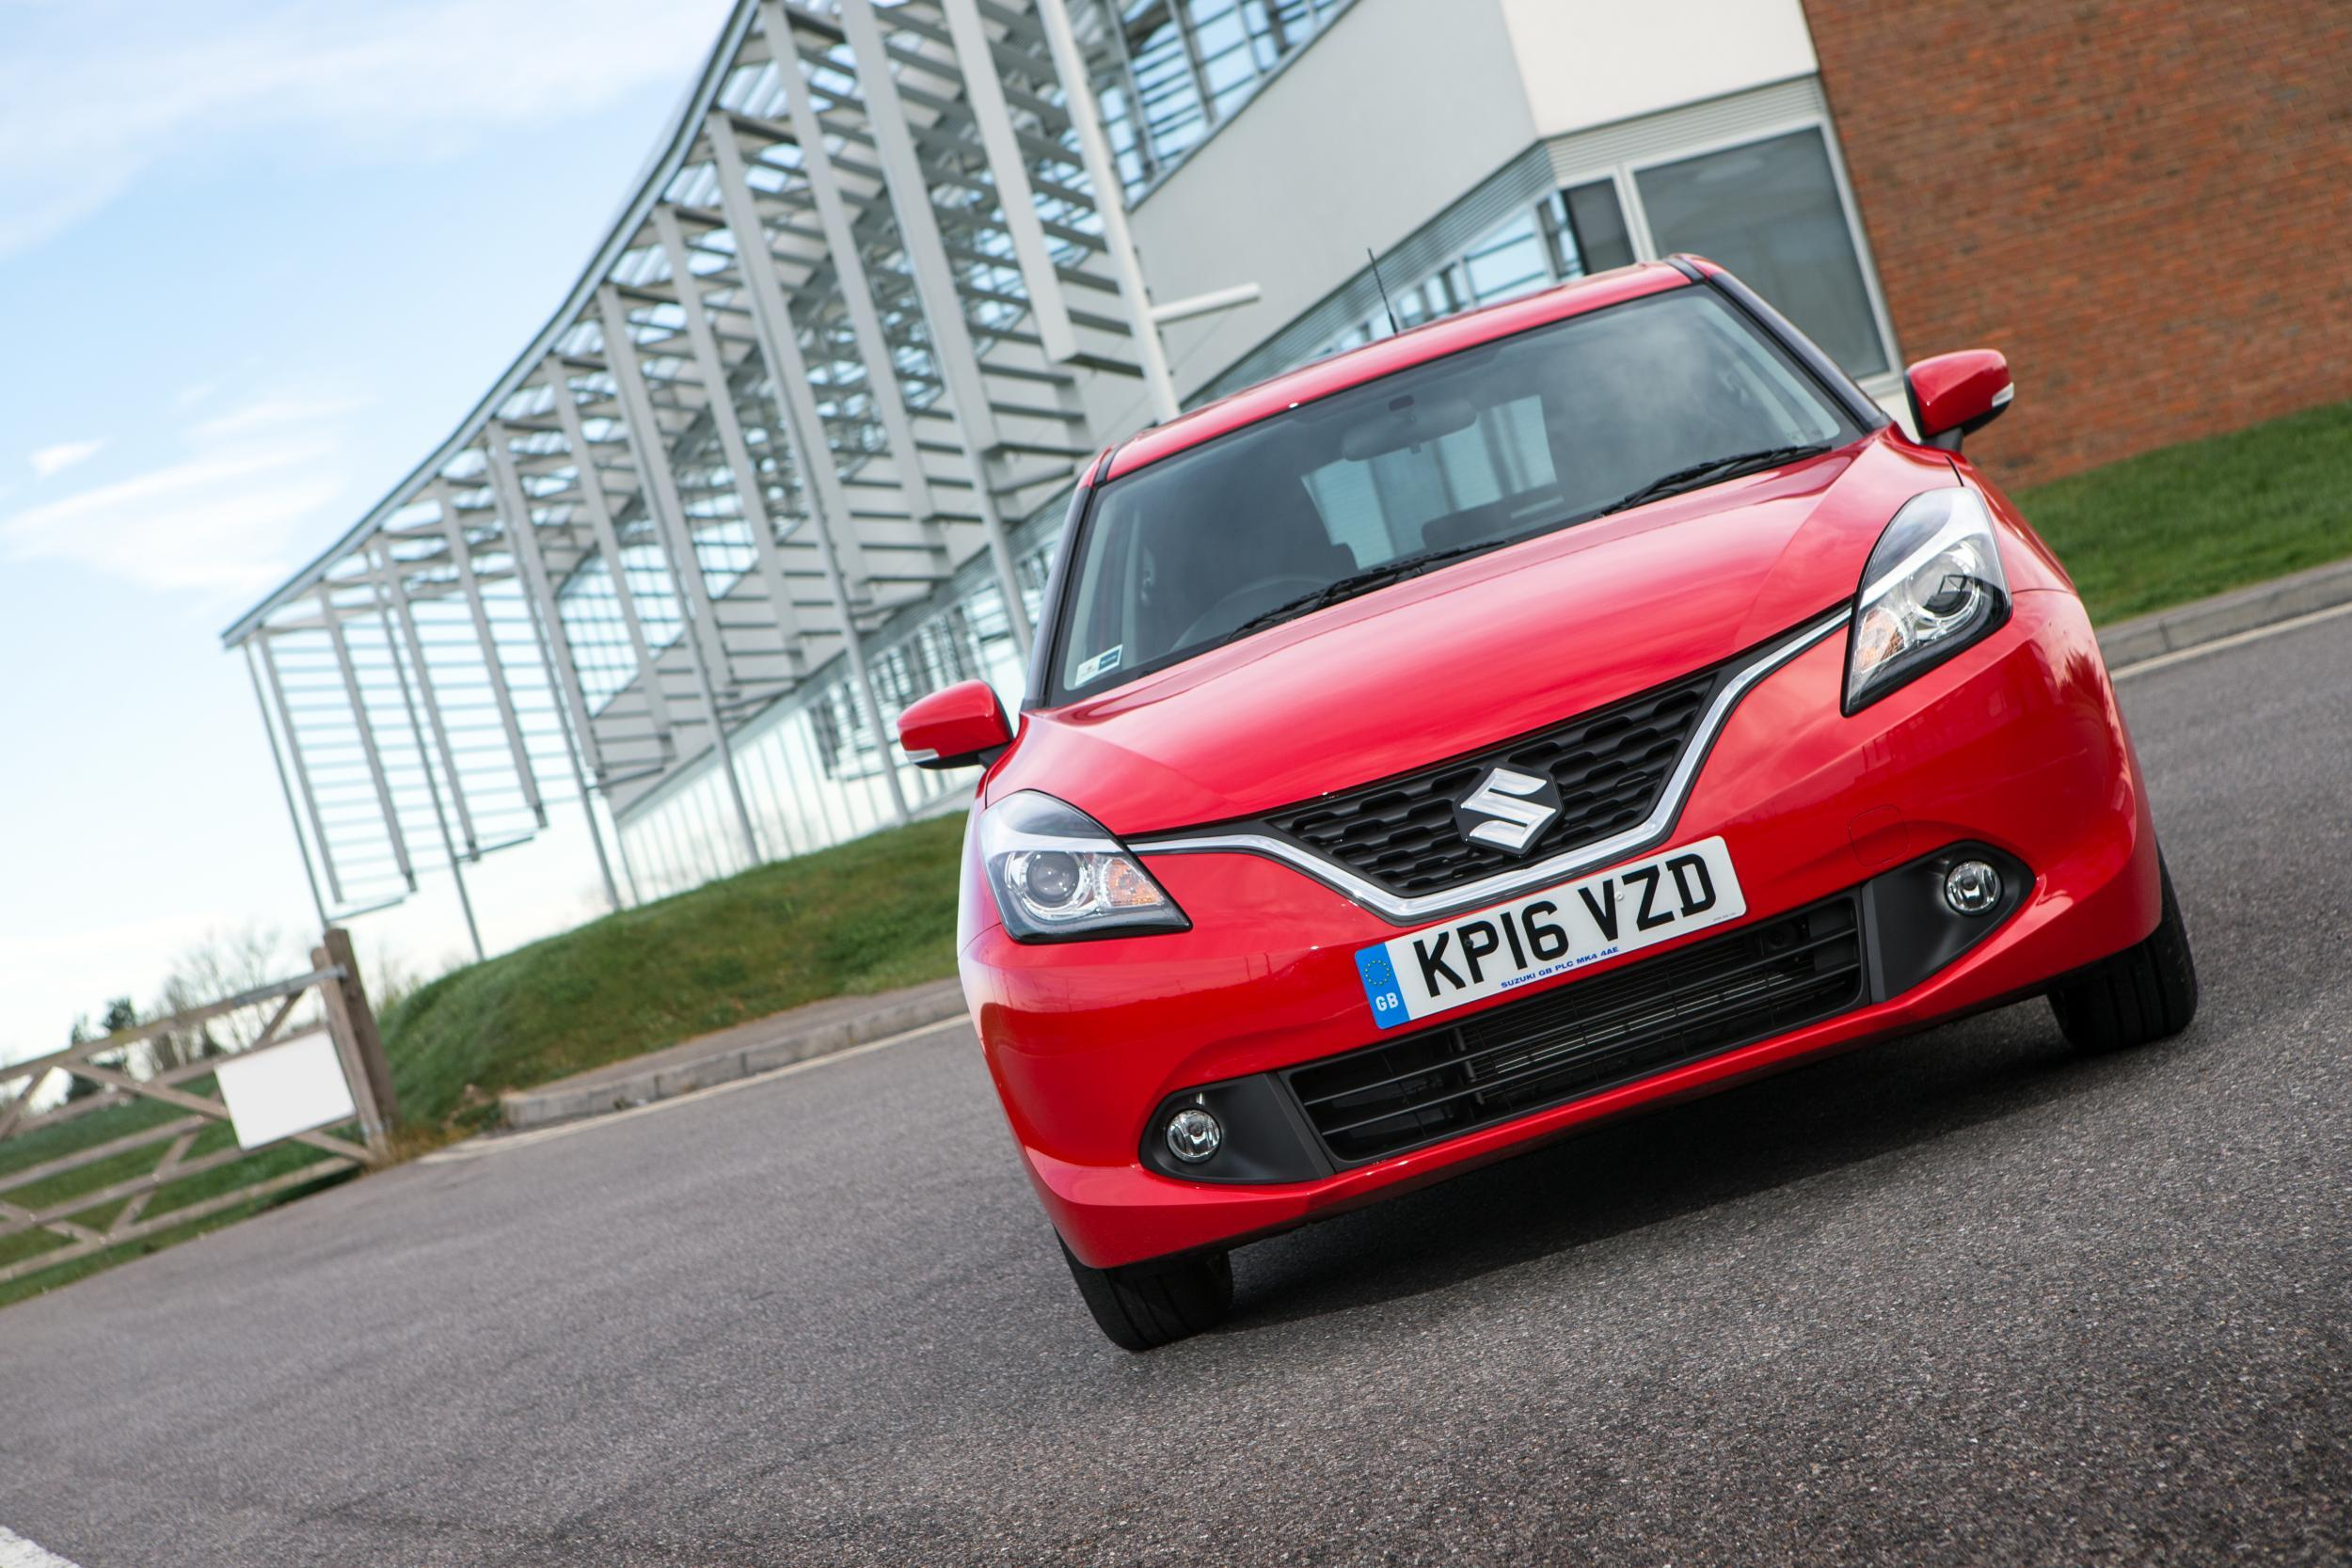 Car review: Suzuki Baleno is light, economical and lively | The ...